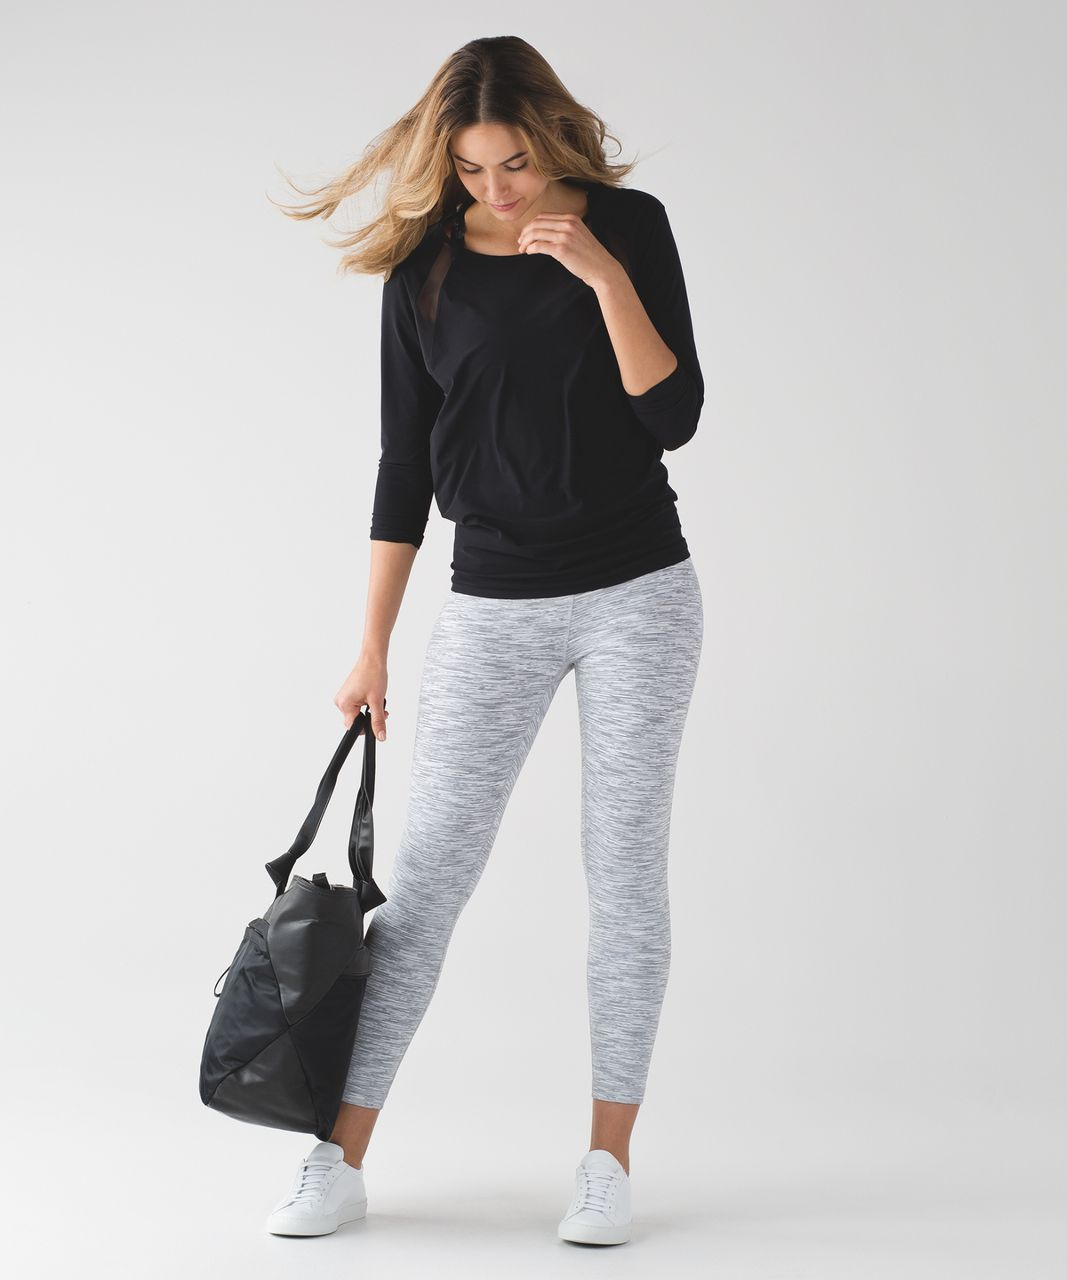 Lululemon High Times Pant - Wee Are From Space Ice Grey Alpine White